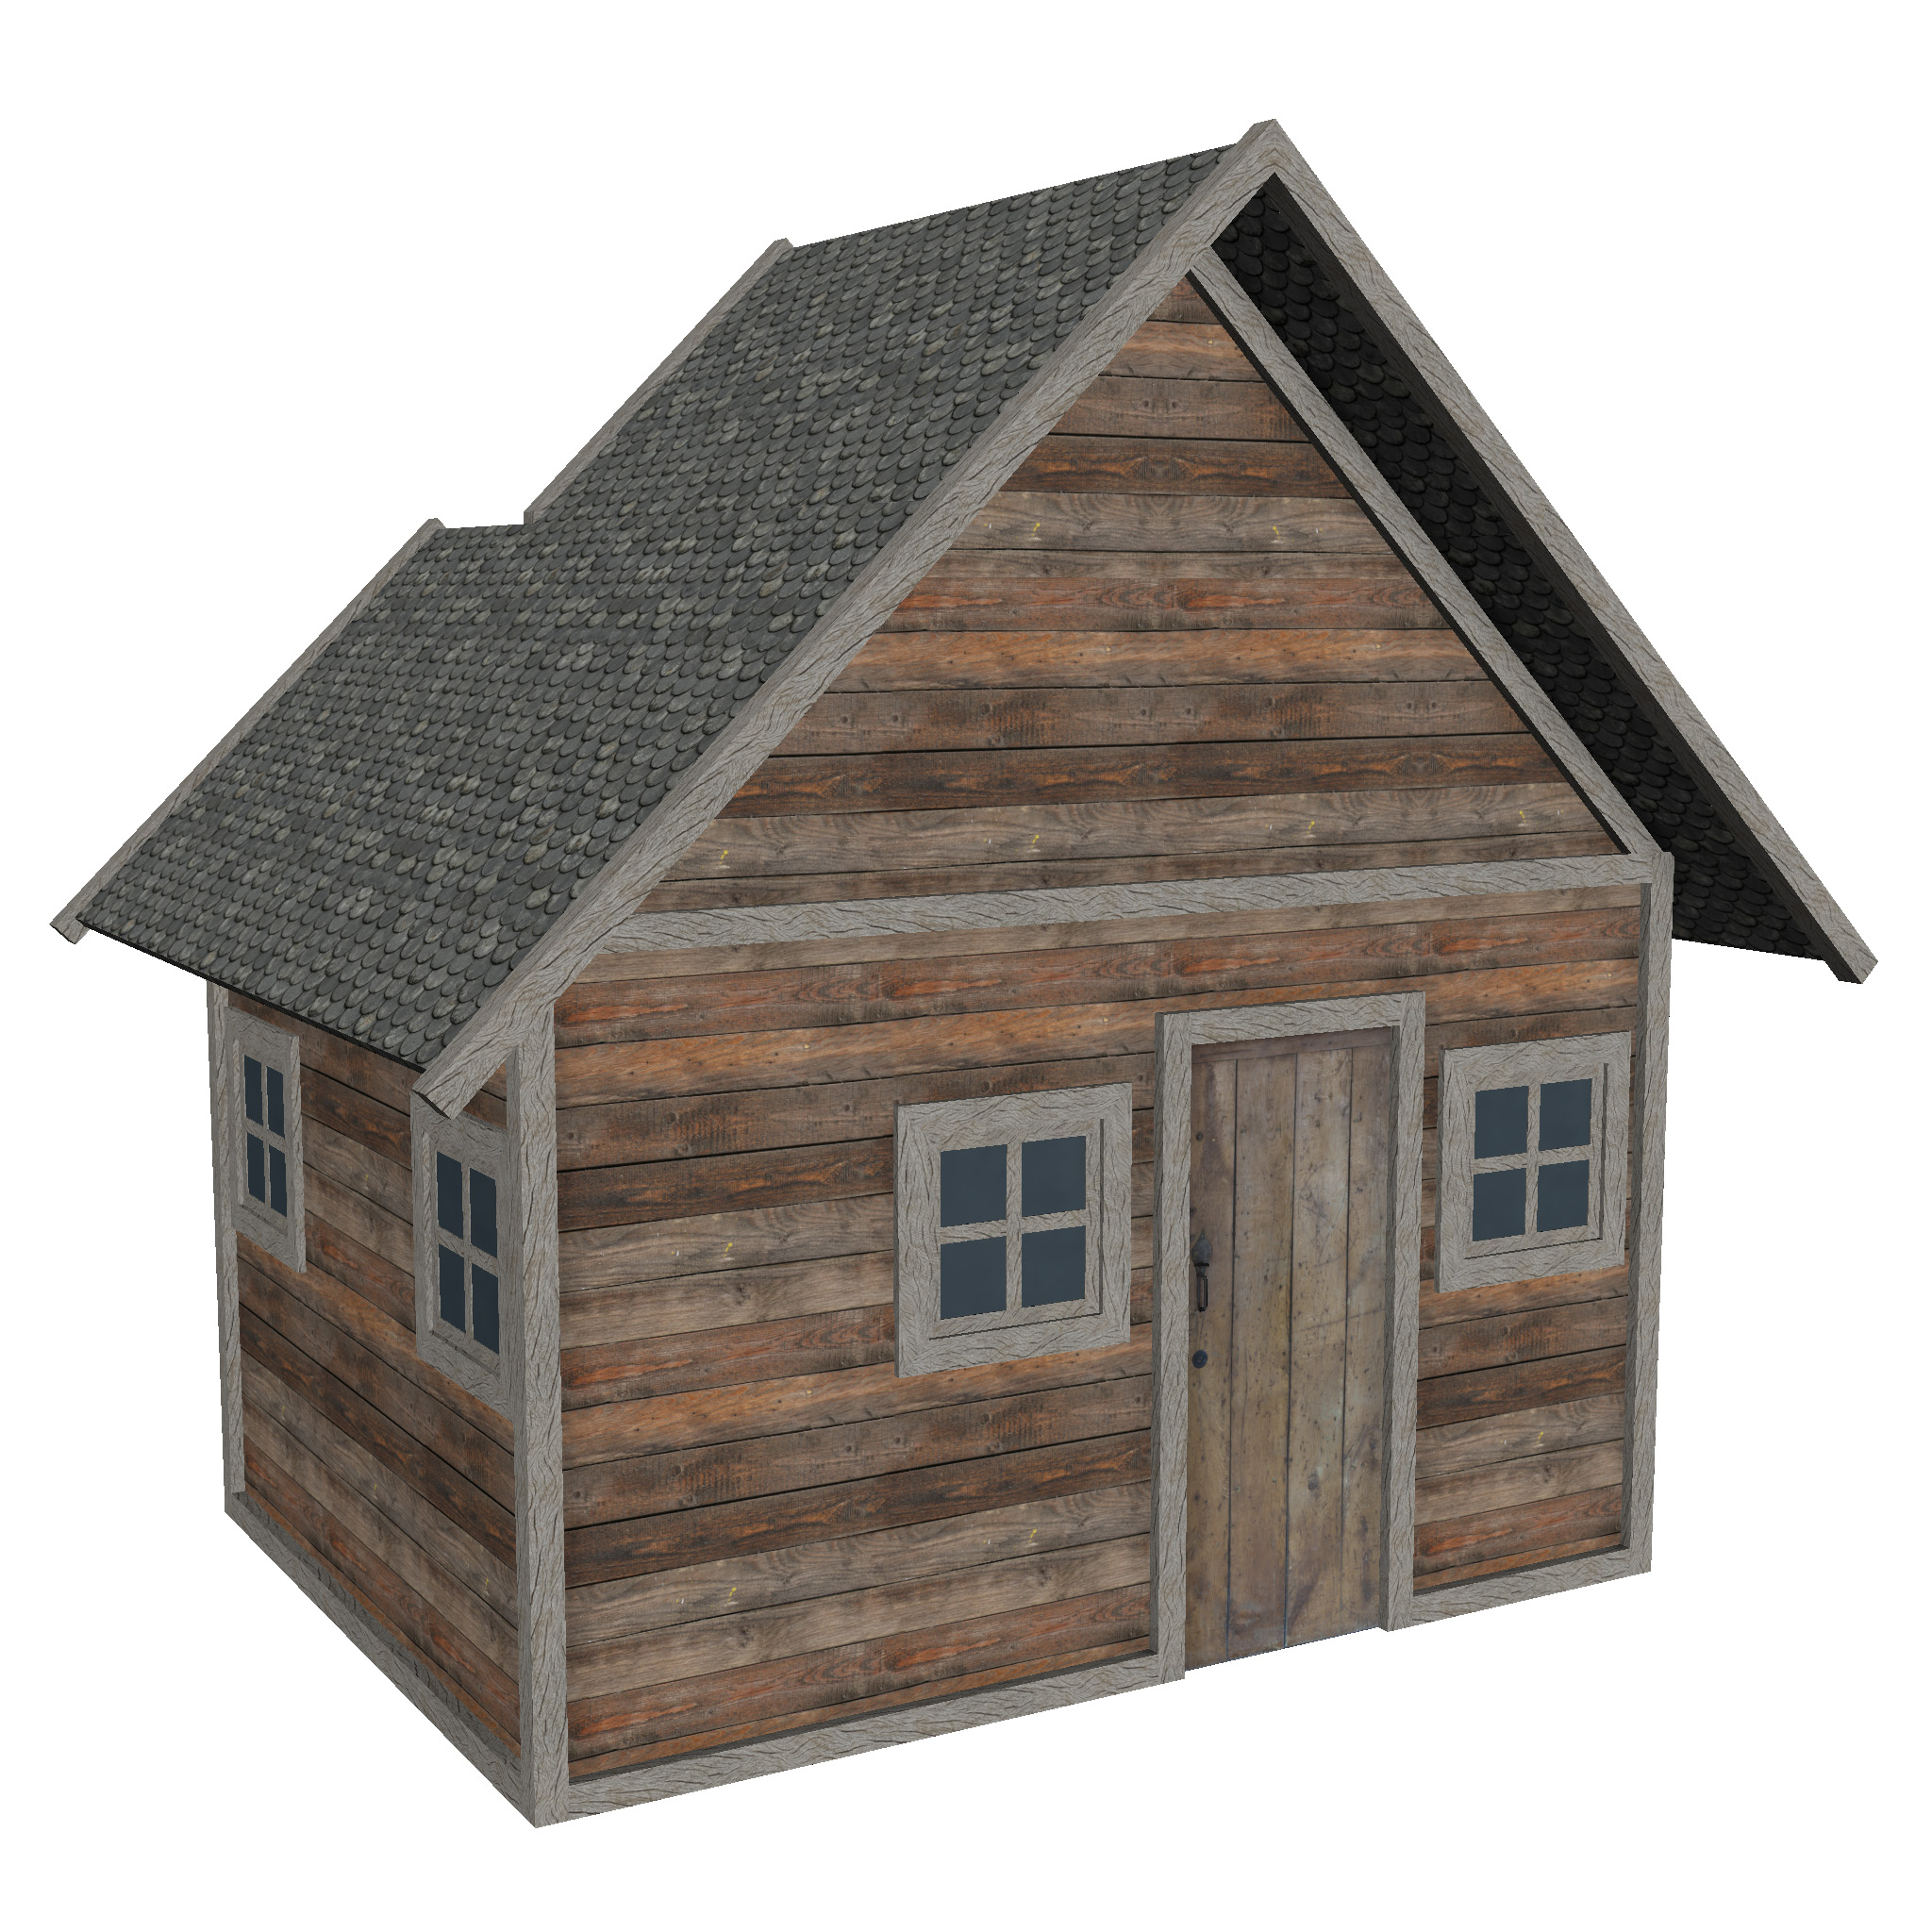 modular wood house set 3d model fbx ma mb 271449